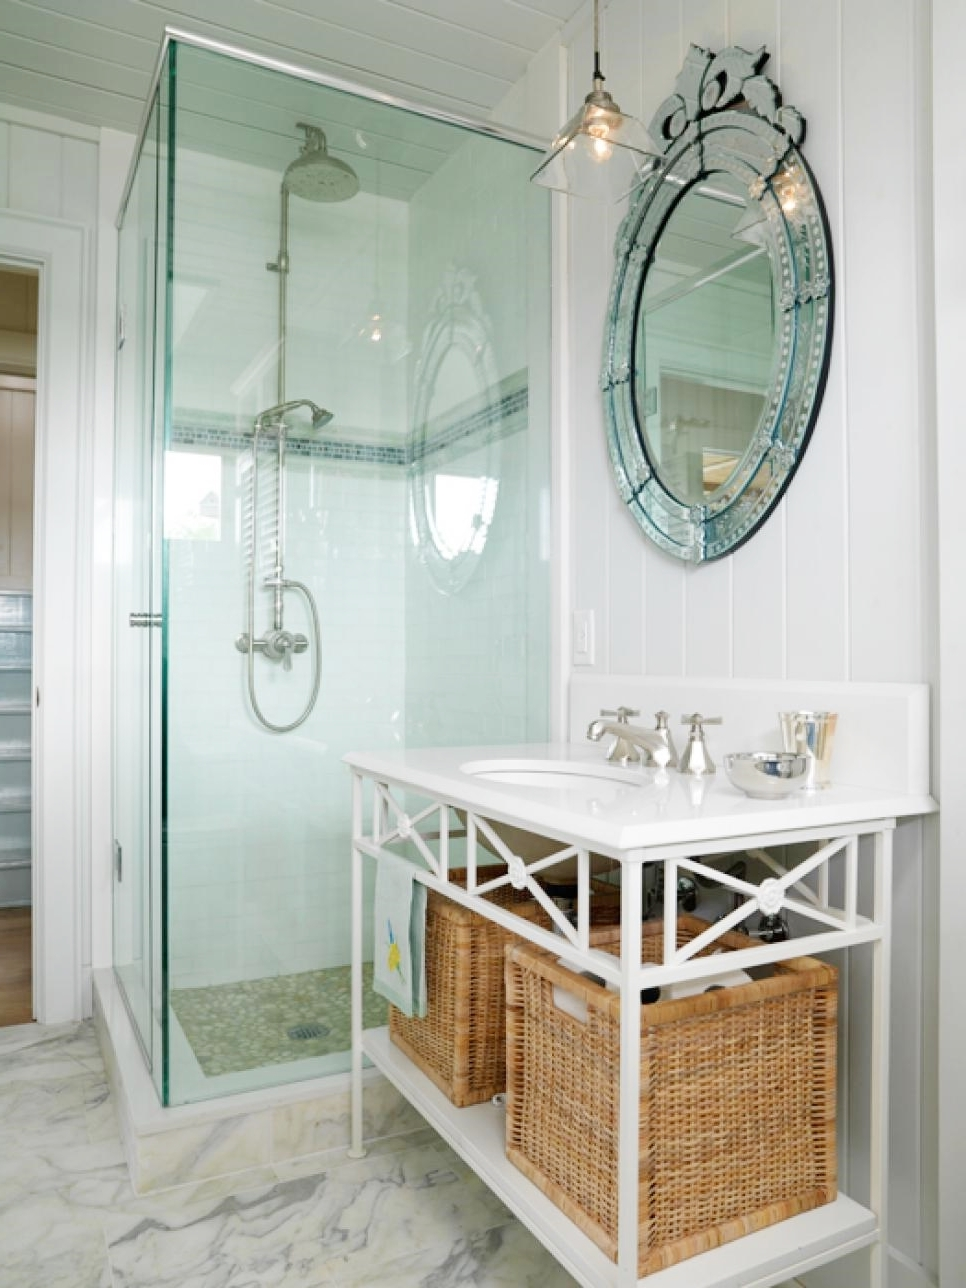 Interior Brilliant Bathroom Storage Ideas Vintage Inspired Within Venetian Mirror Bathroom (Image 10 of 15)